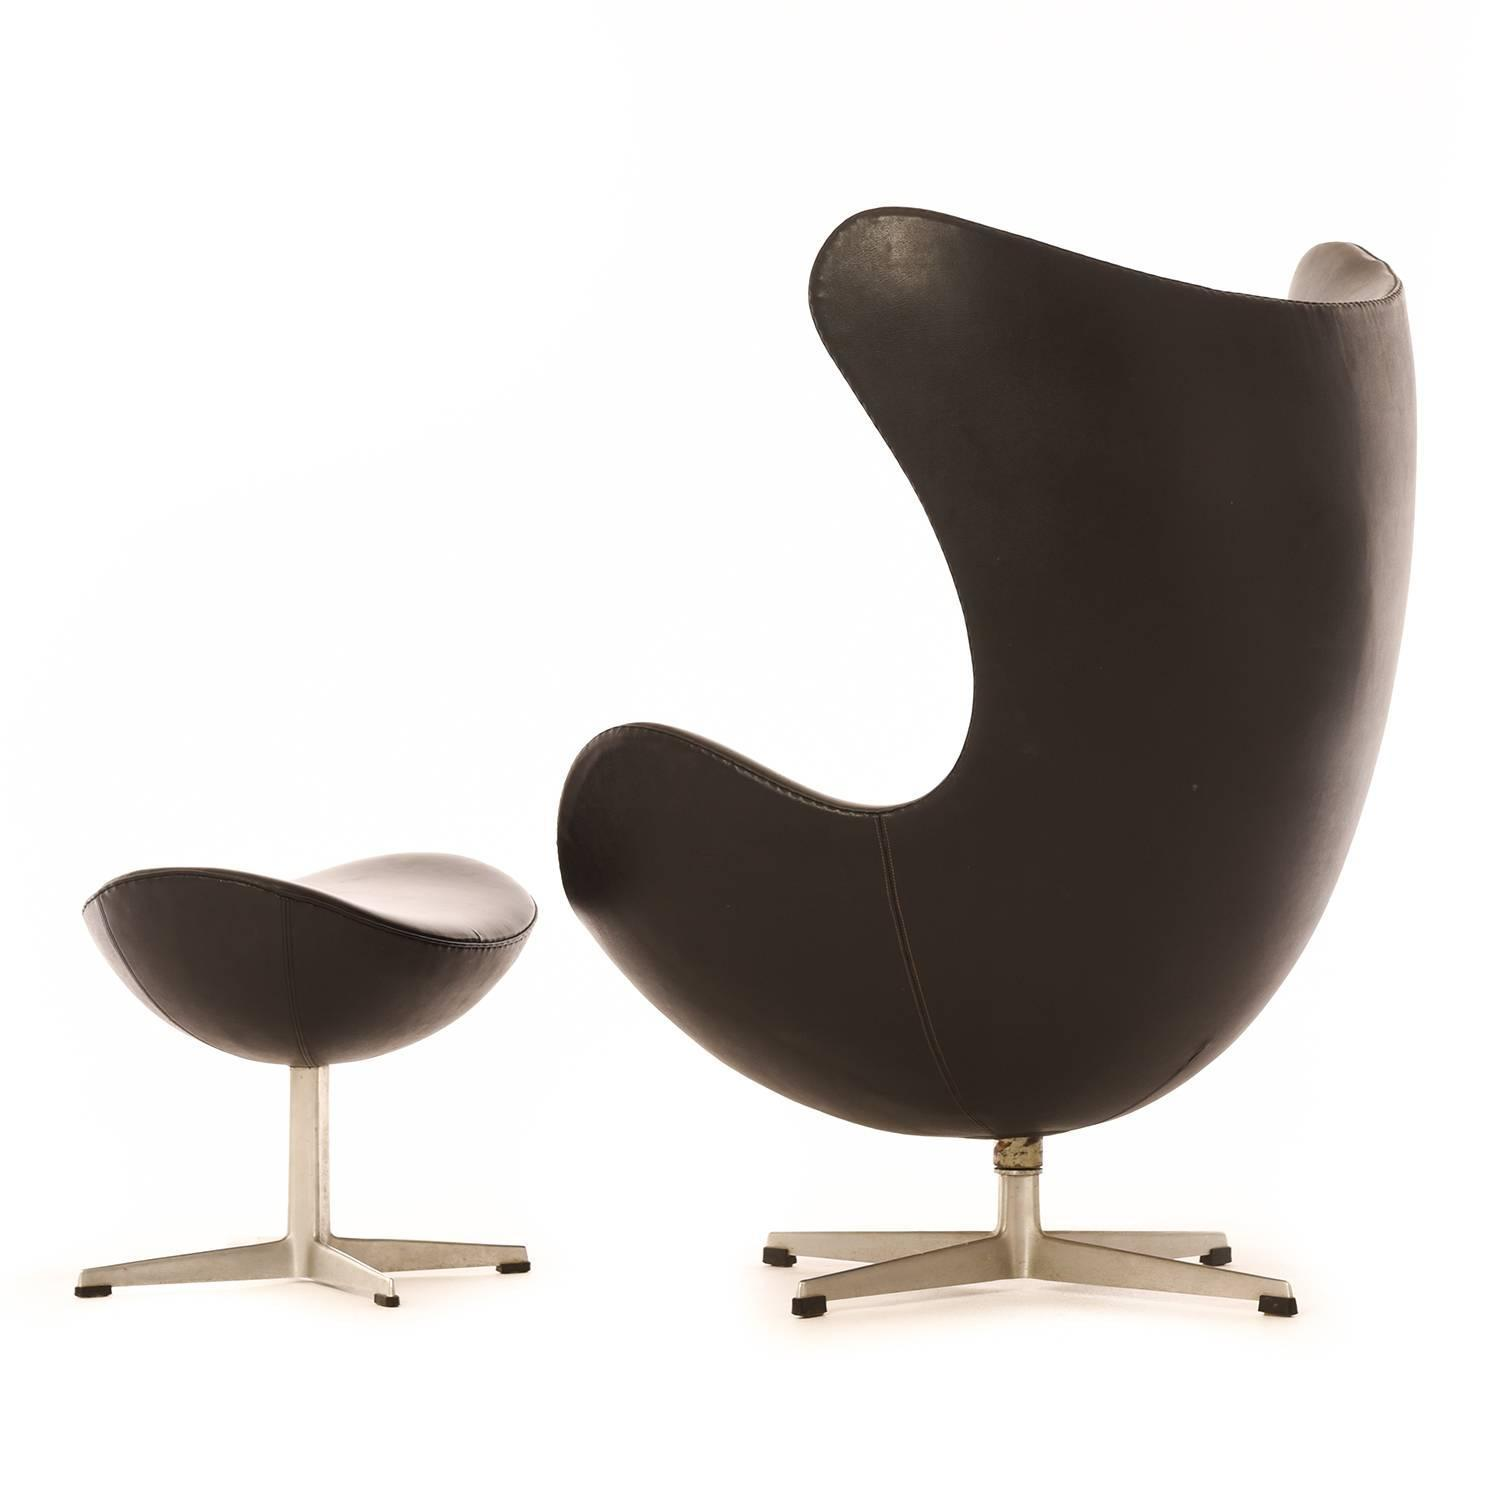 egg chairs for sale unique home office danish modern chair with ottoman at 1stdibs